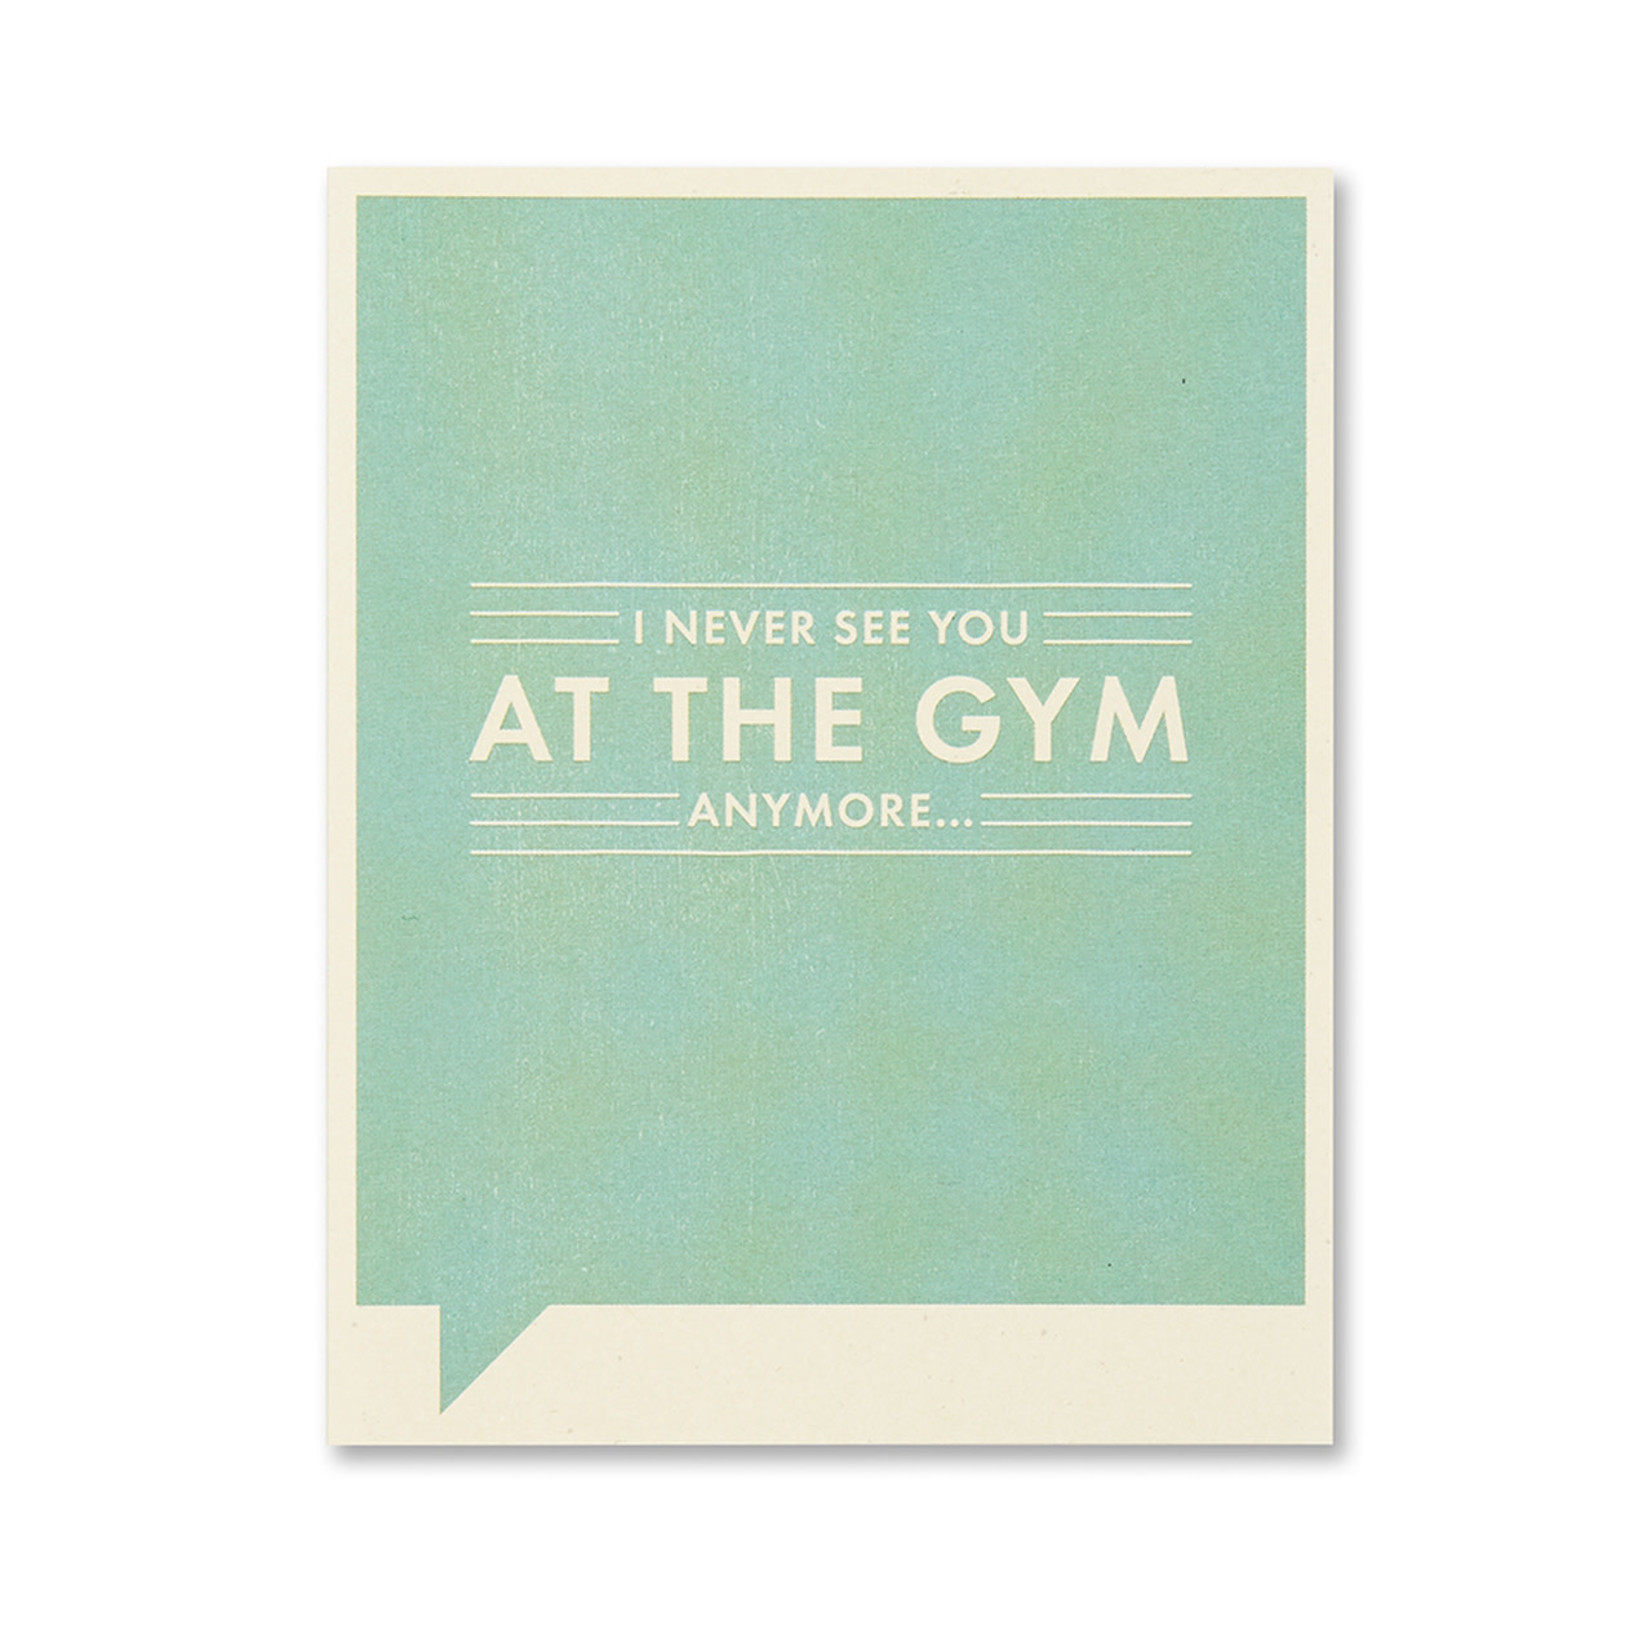 I NEVER SEE YOU AT THE GYM CARD